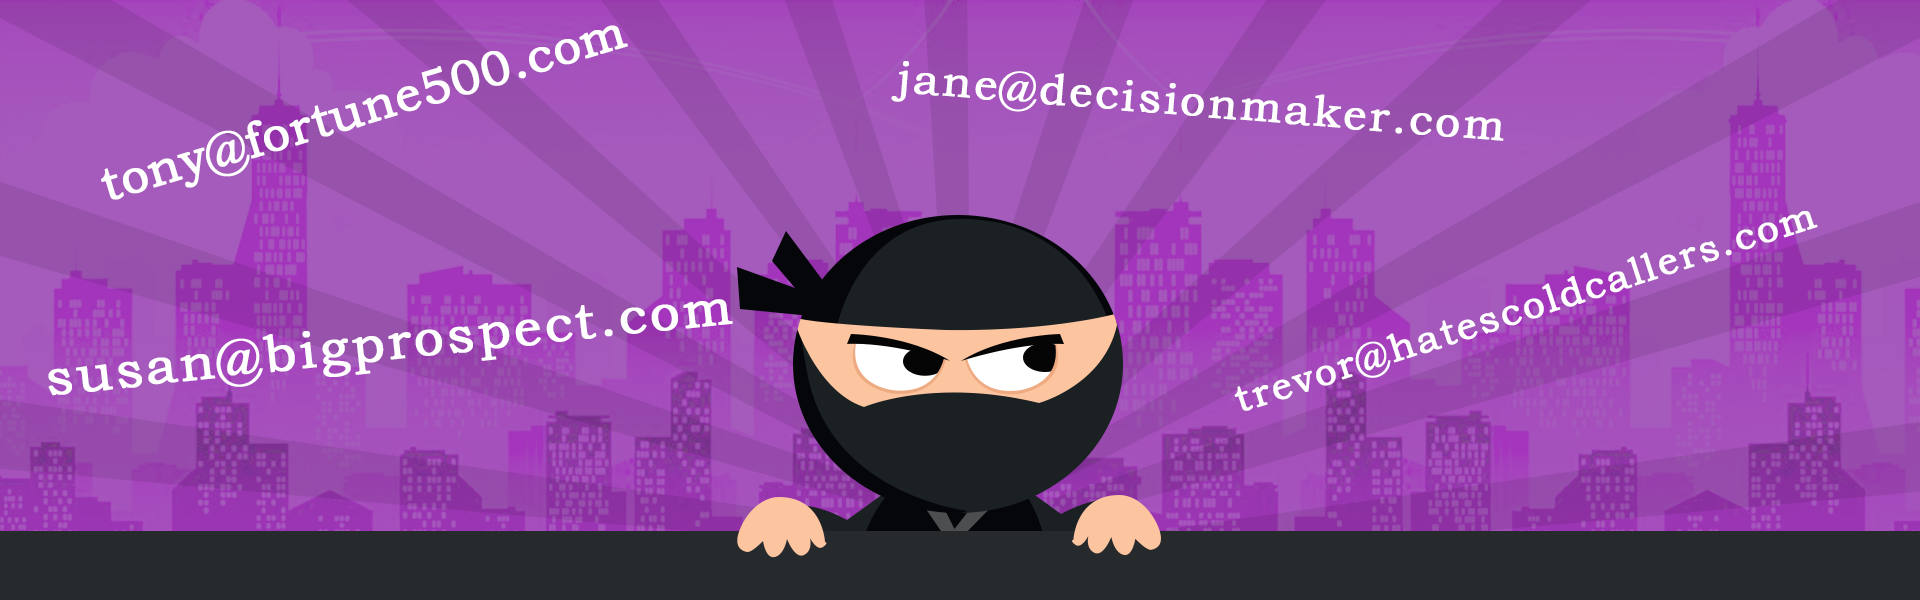 10 Super Ninja Ways You Can Find Any Email Address And Avoid Being Pushy At Sales